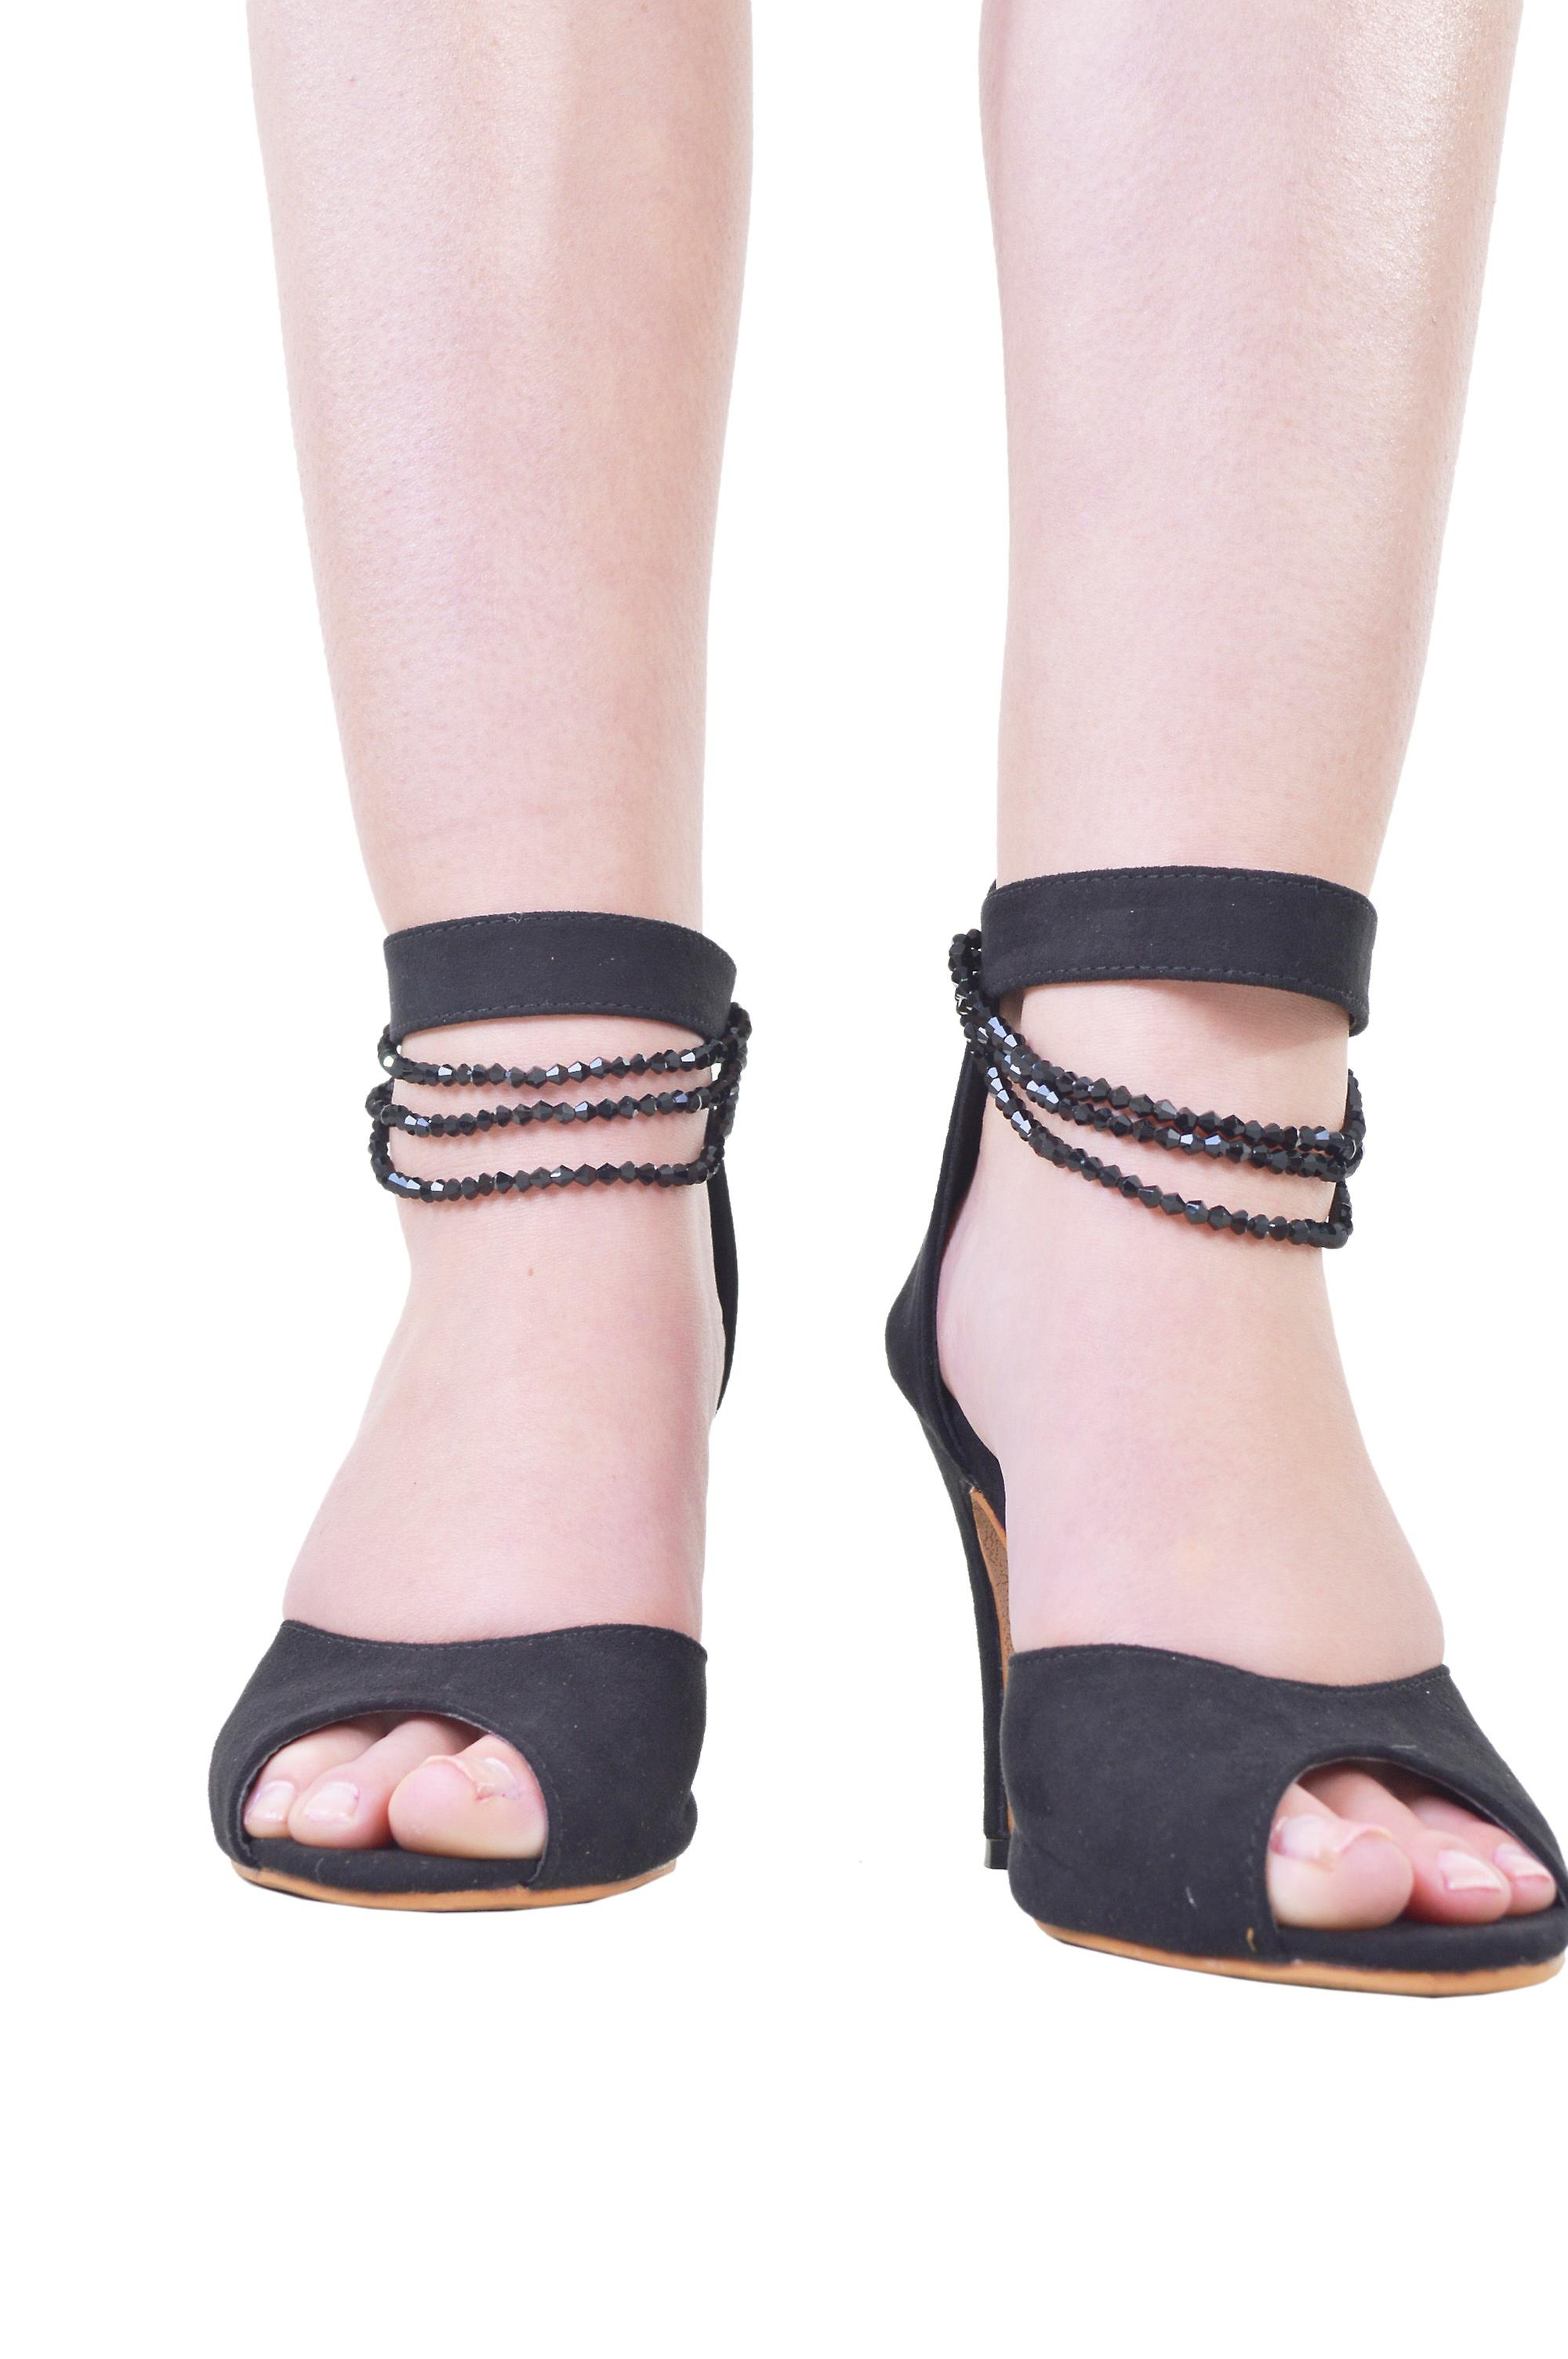 Lovemystyle Peep Toe Heels With Beaded Chain In Black